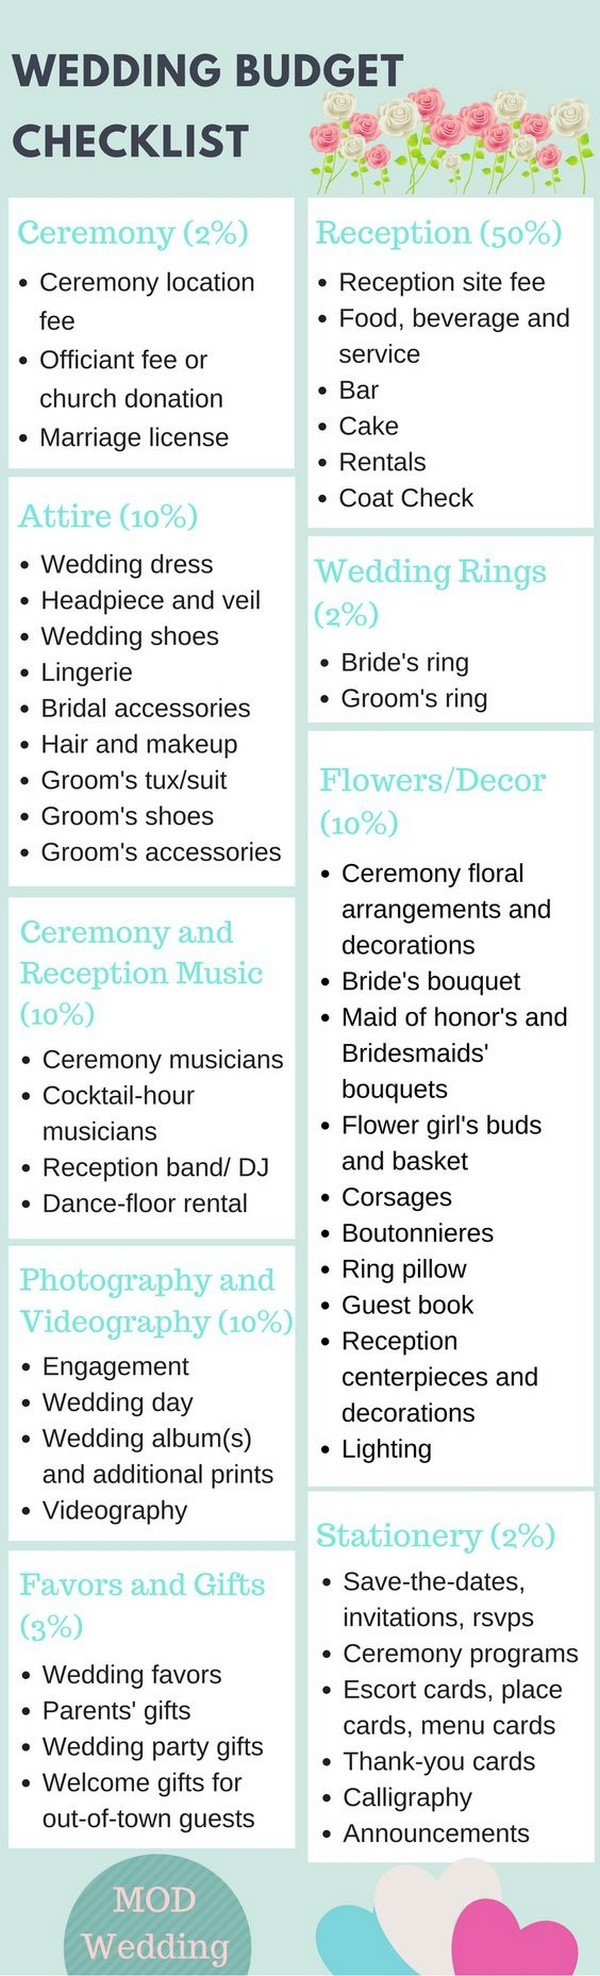 wedding budget checklist for planning guide